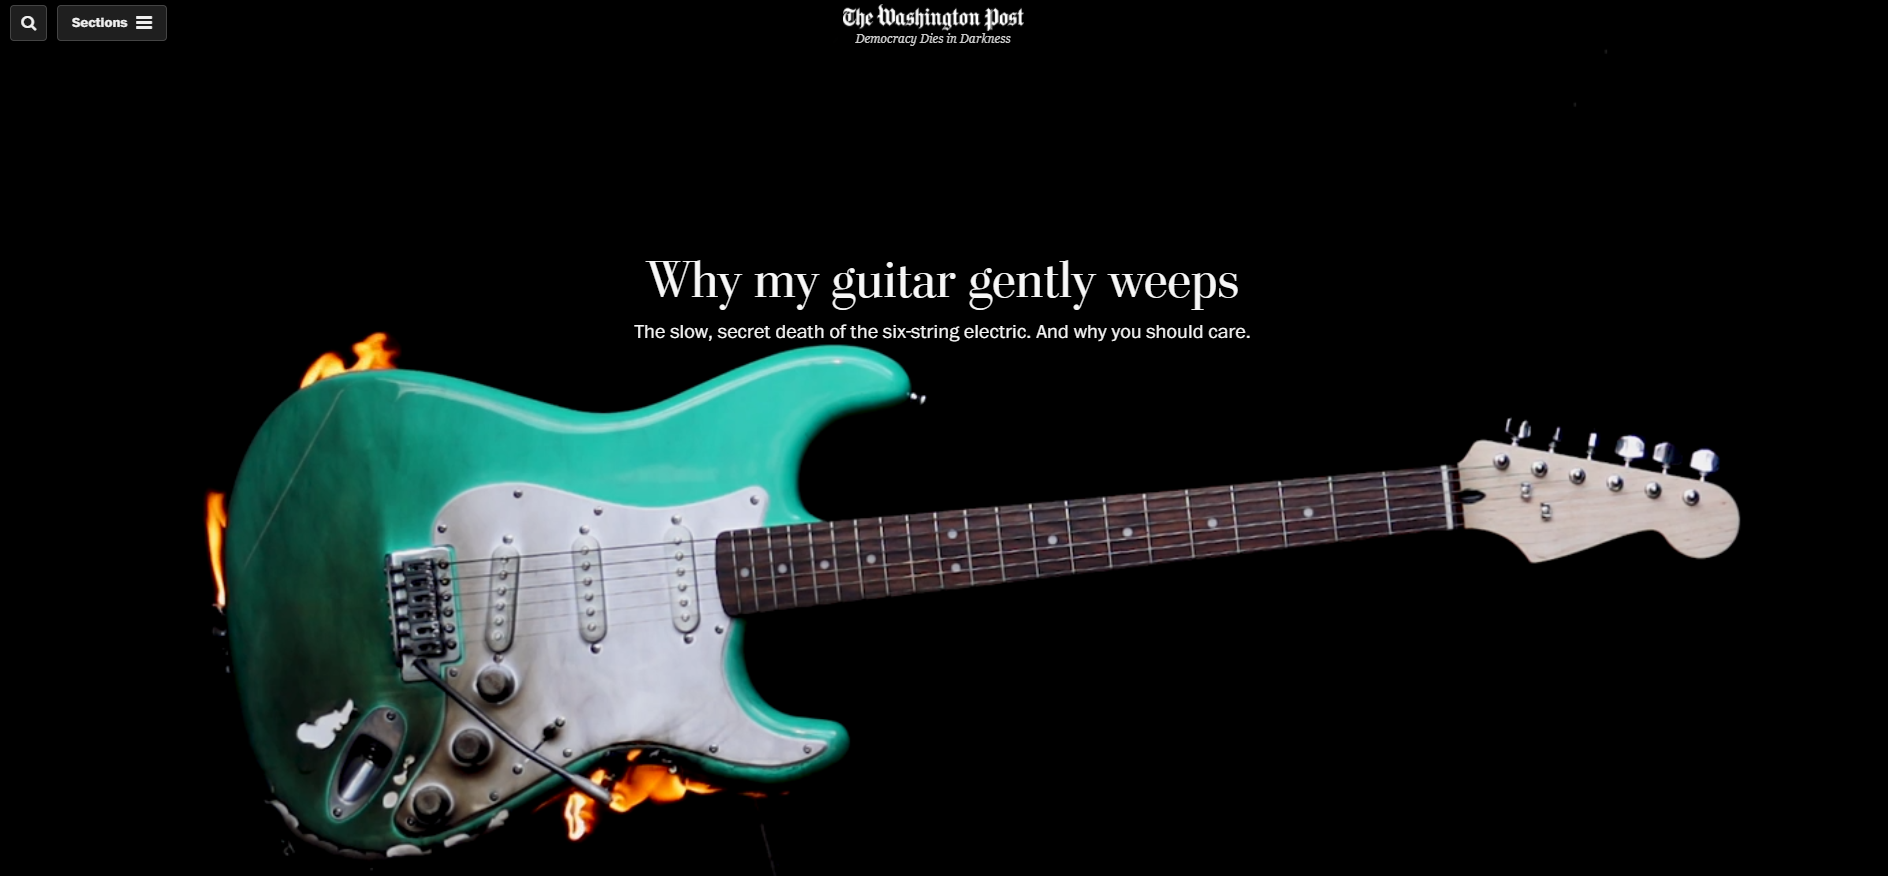 Why My Guitar Gently Weeps - The Slow, Secret Death of the Electric Guitar